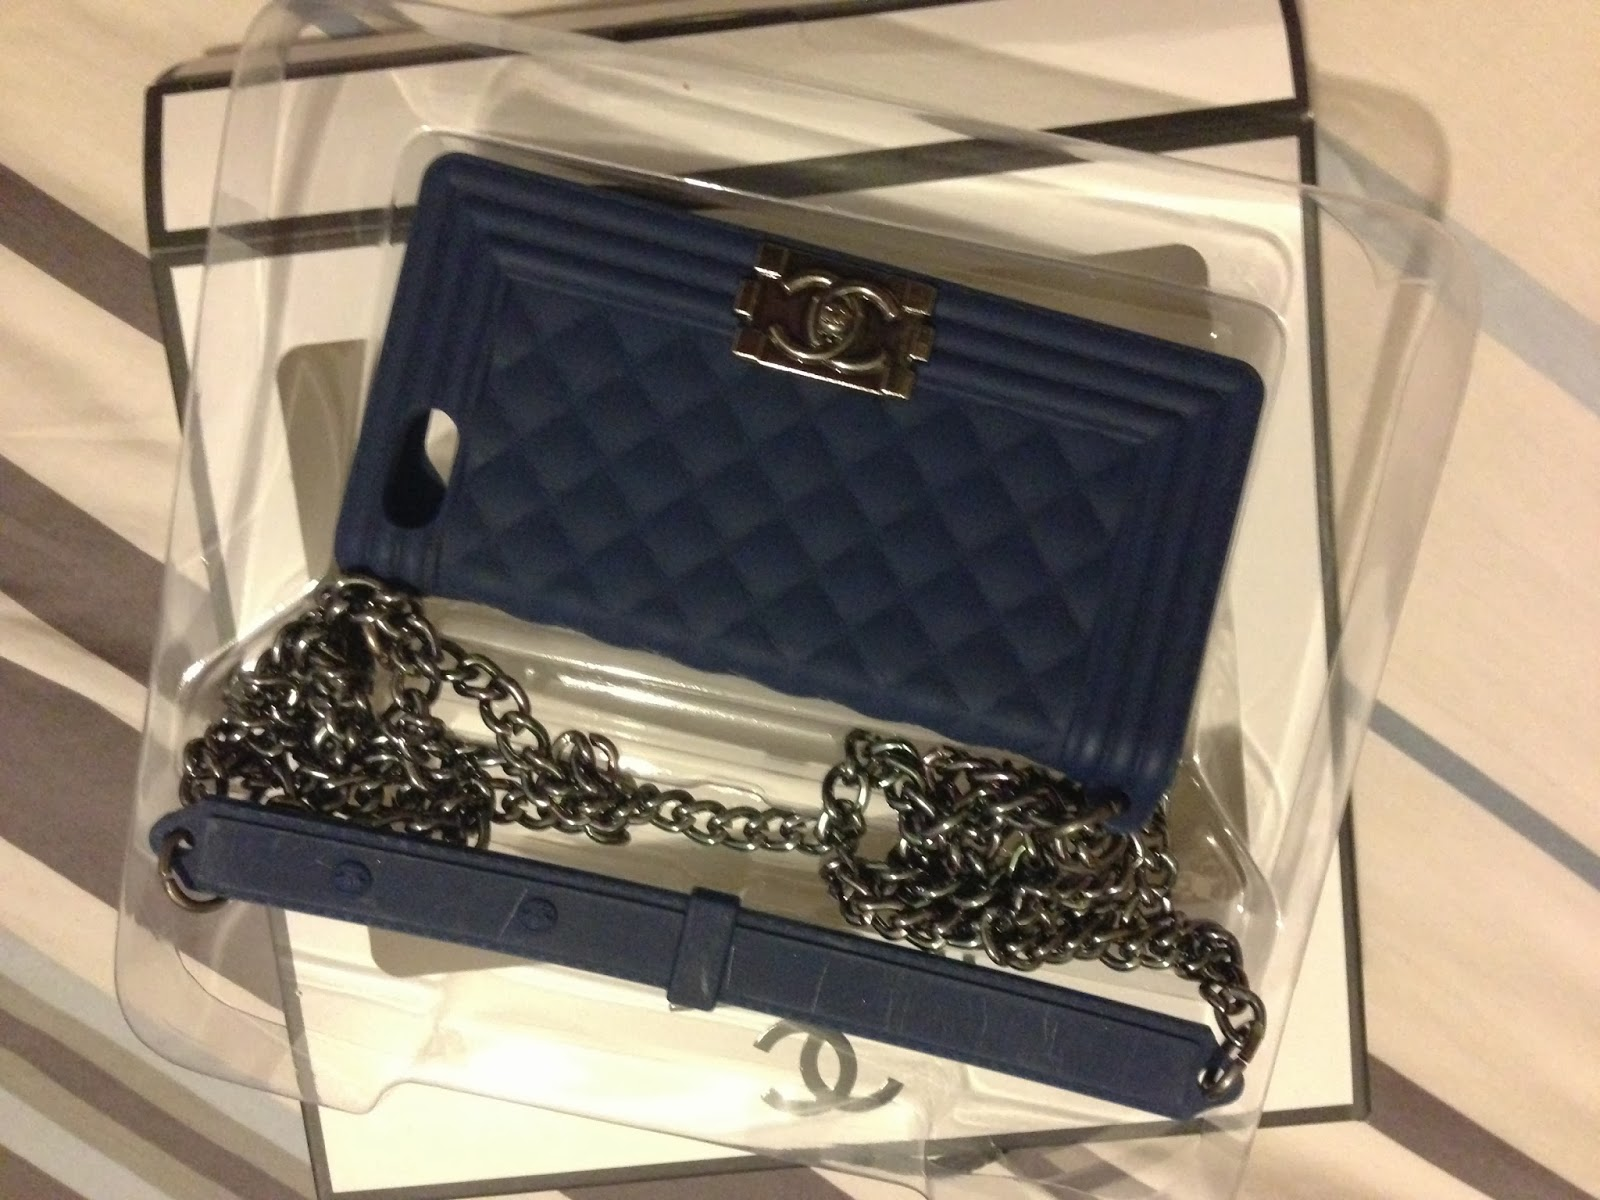 Case Design authentic chanel phone case : Real Chanel Iphone 5 Case Product line: phone case!